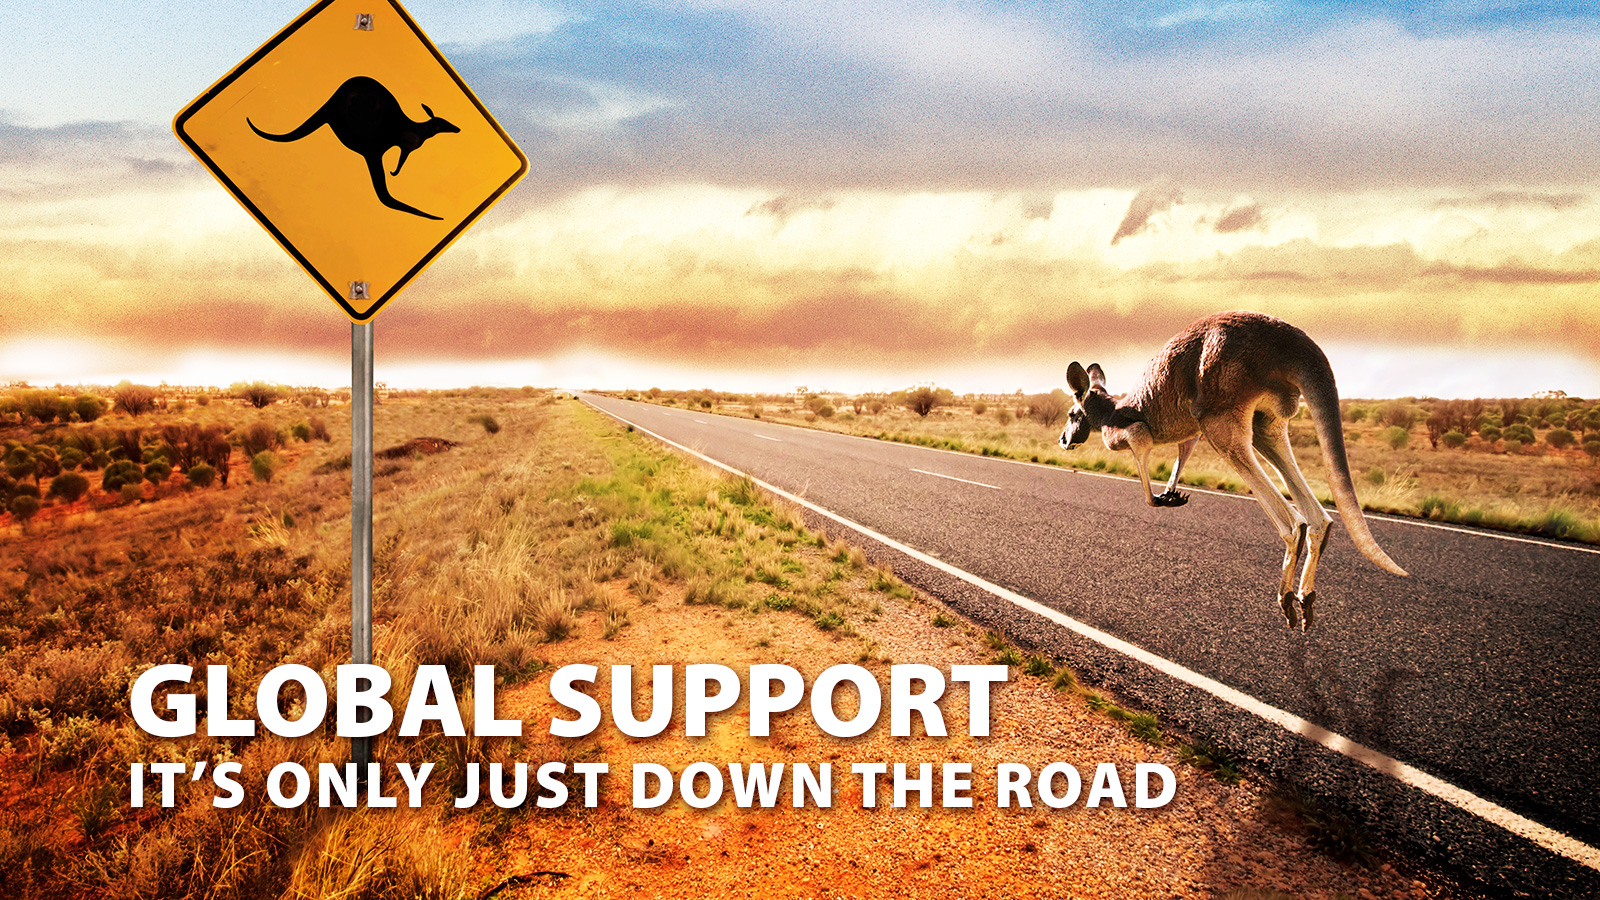 global-support-down-the-road